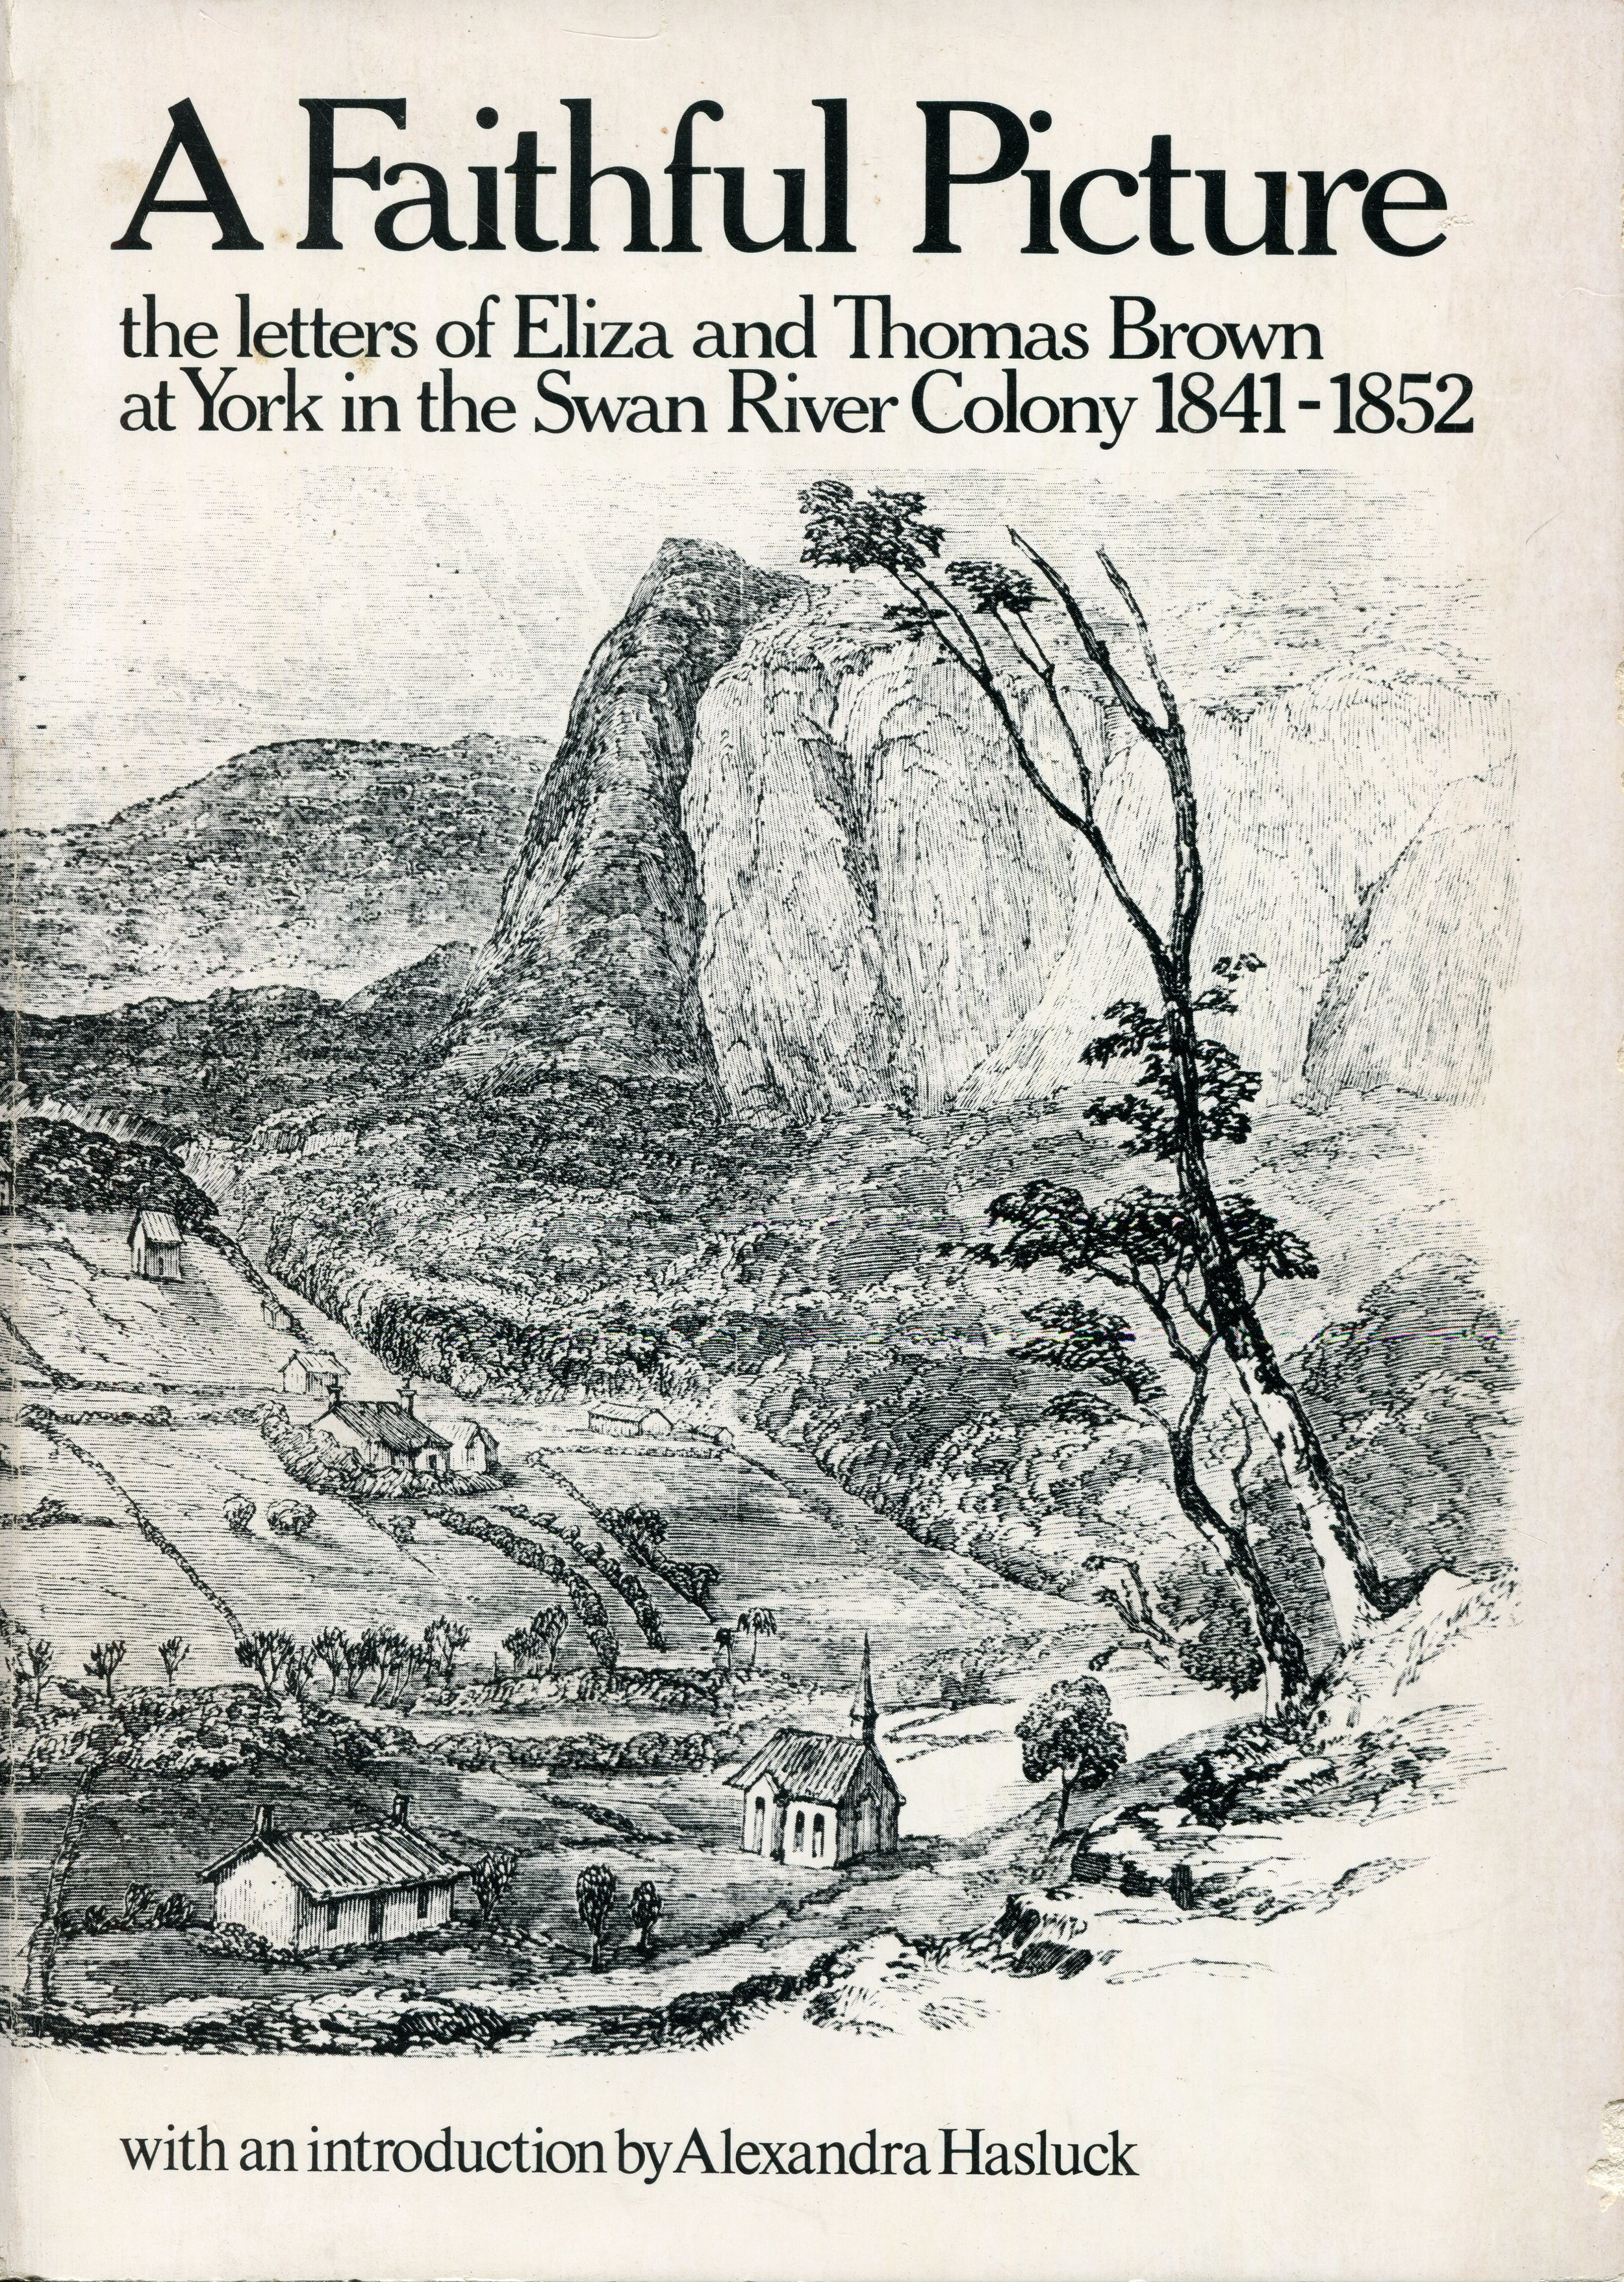 A faithful picture : the letters of Eliza and Thomas Brown at York in the Swan River colony, 1841-1852 : with an introduction   Letters of Eliza Brown (1896) and Thomas Brown (1863) ; introduction by Alexandra Hasluck ; edited by Peter Cowan.